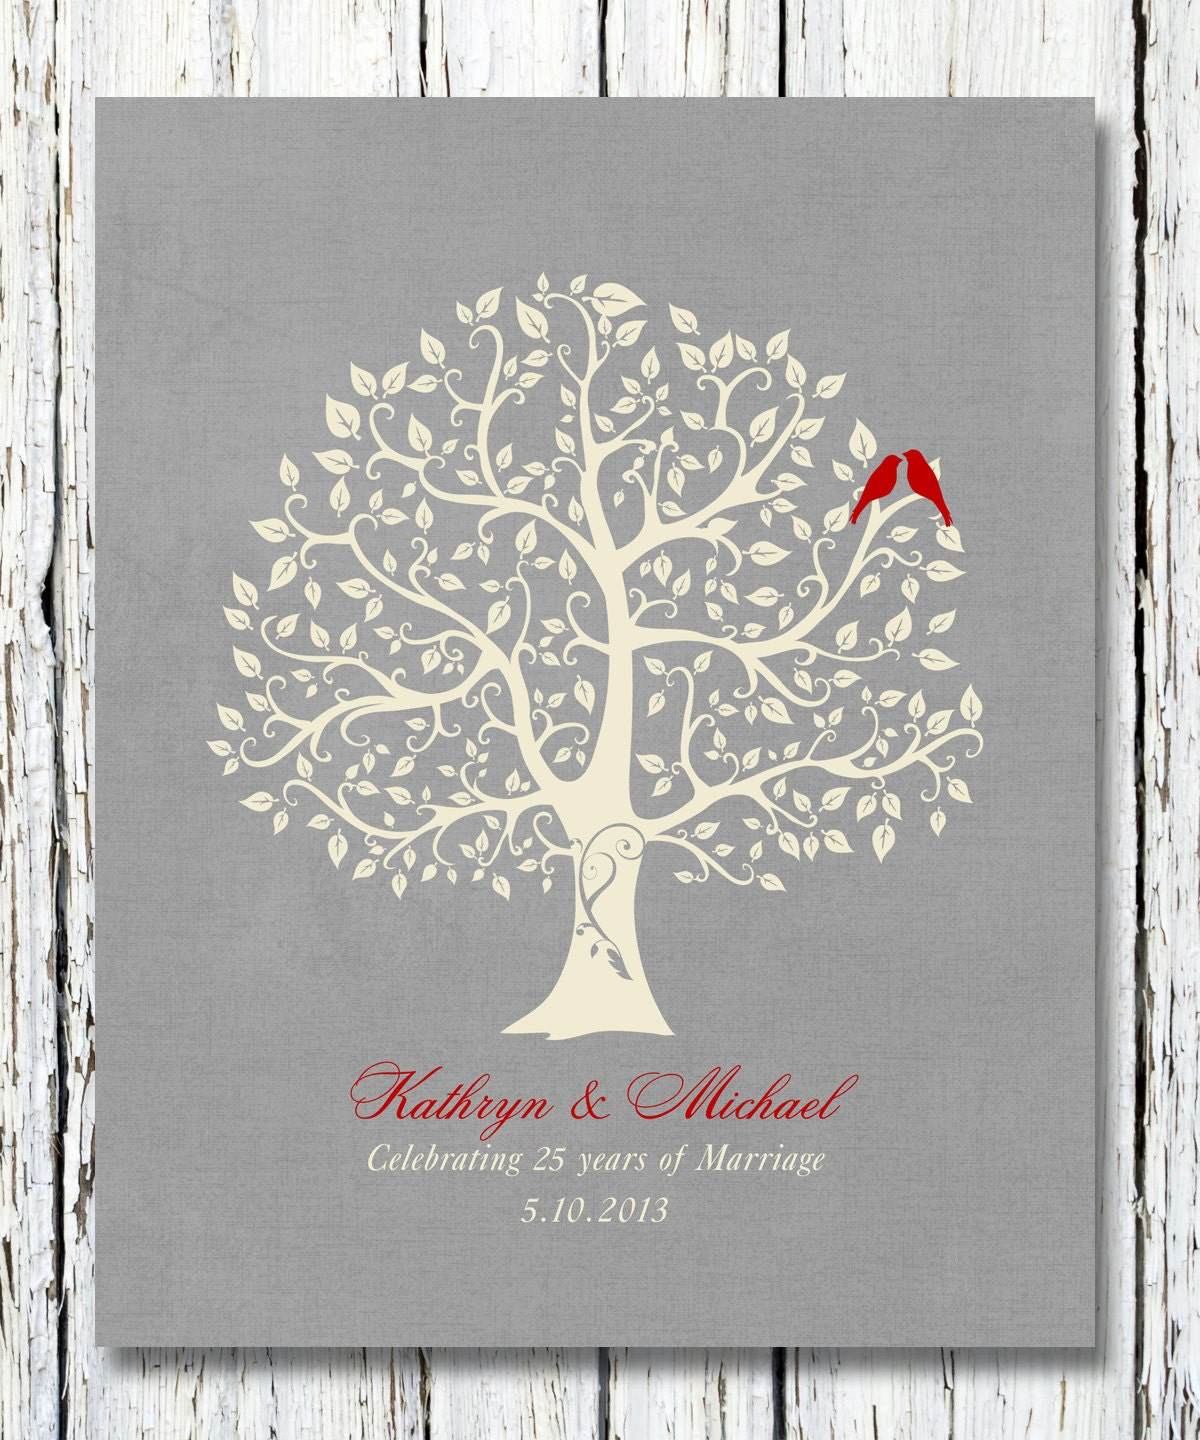 25th Wedding Anniversary Party Ideas For Parents In India : 25th Silver Wedding Anniversary Tree Gift Anniversary gift